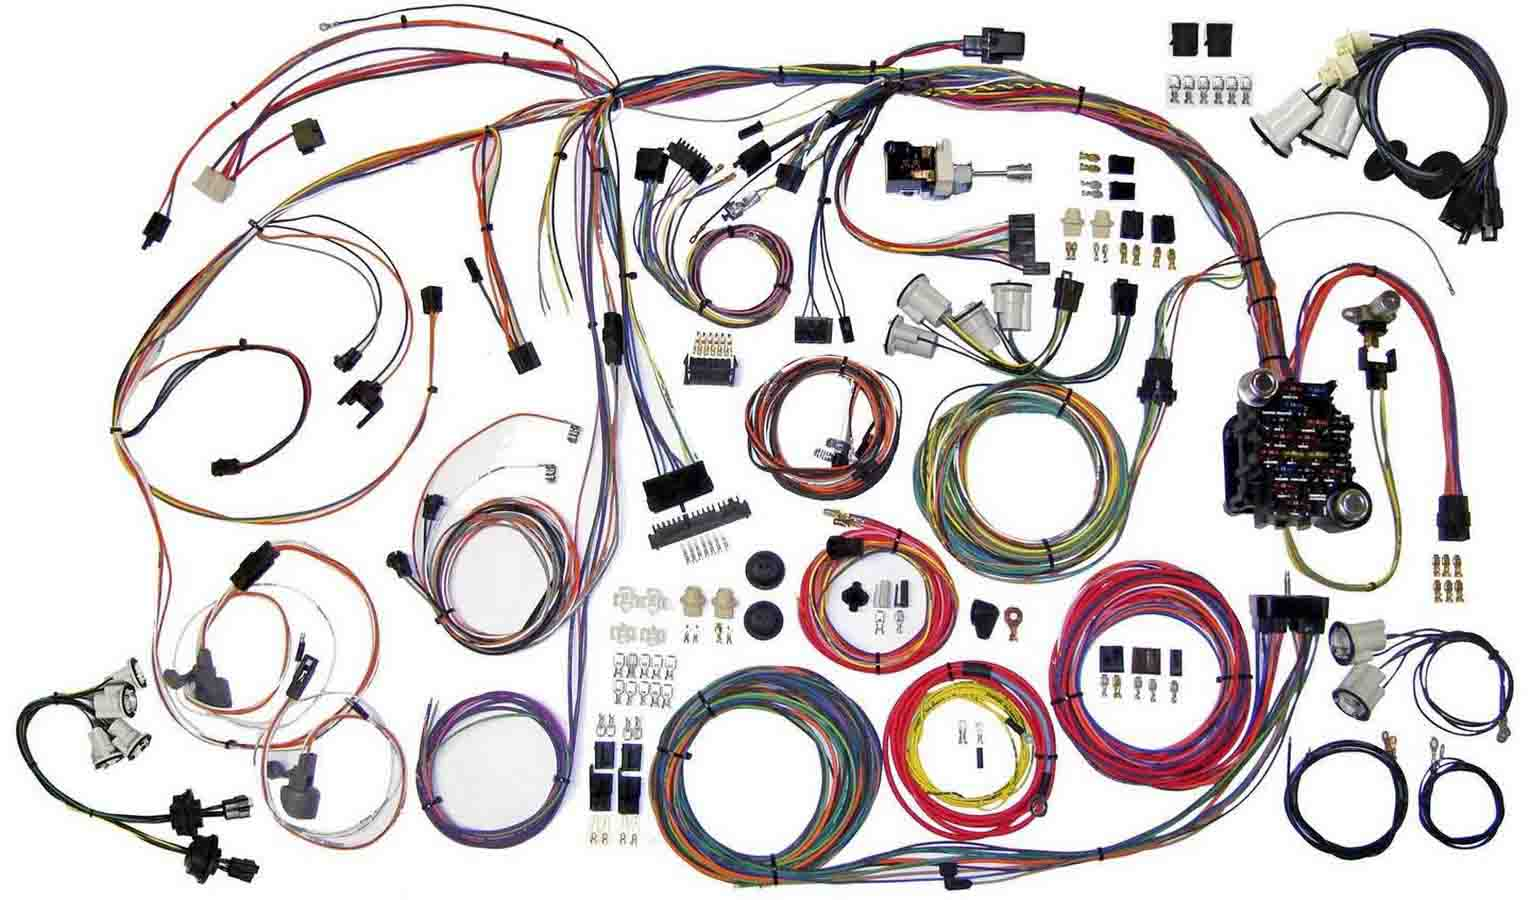 Shop For American Autowire Etheridge Race Parts Vintage Mopar Wiring Harness 70 72 Chevy Monte Carlo Kit Complete Car Classic